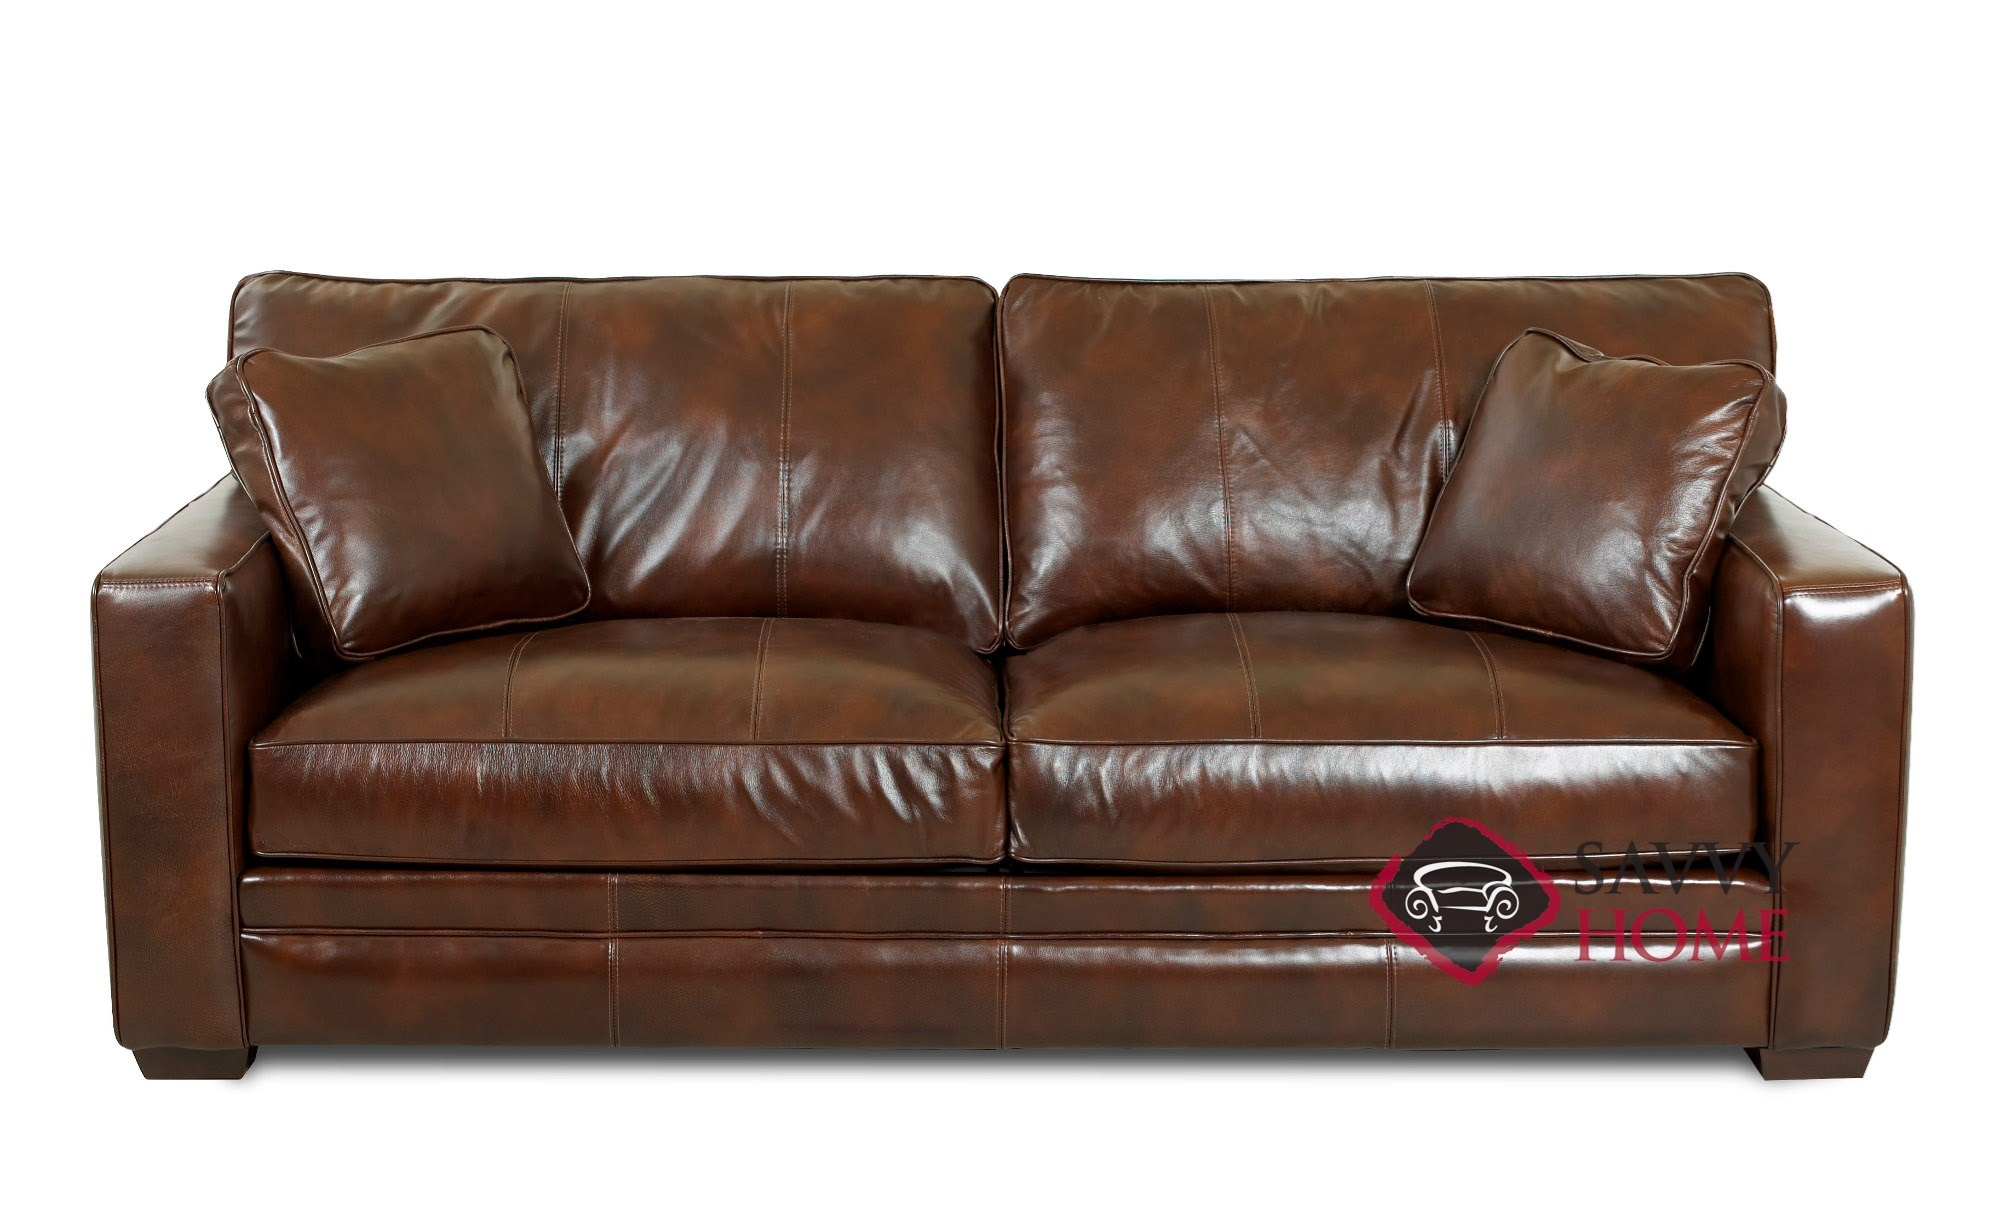 leather sectional sleeper sofa queen patio set clearance chandler sofas by savvy is fully